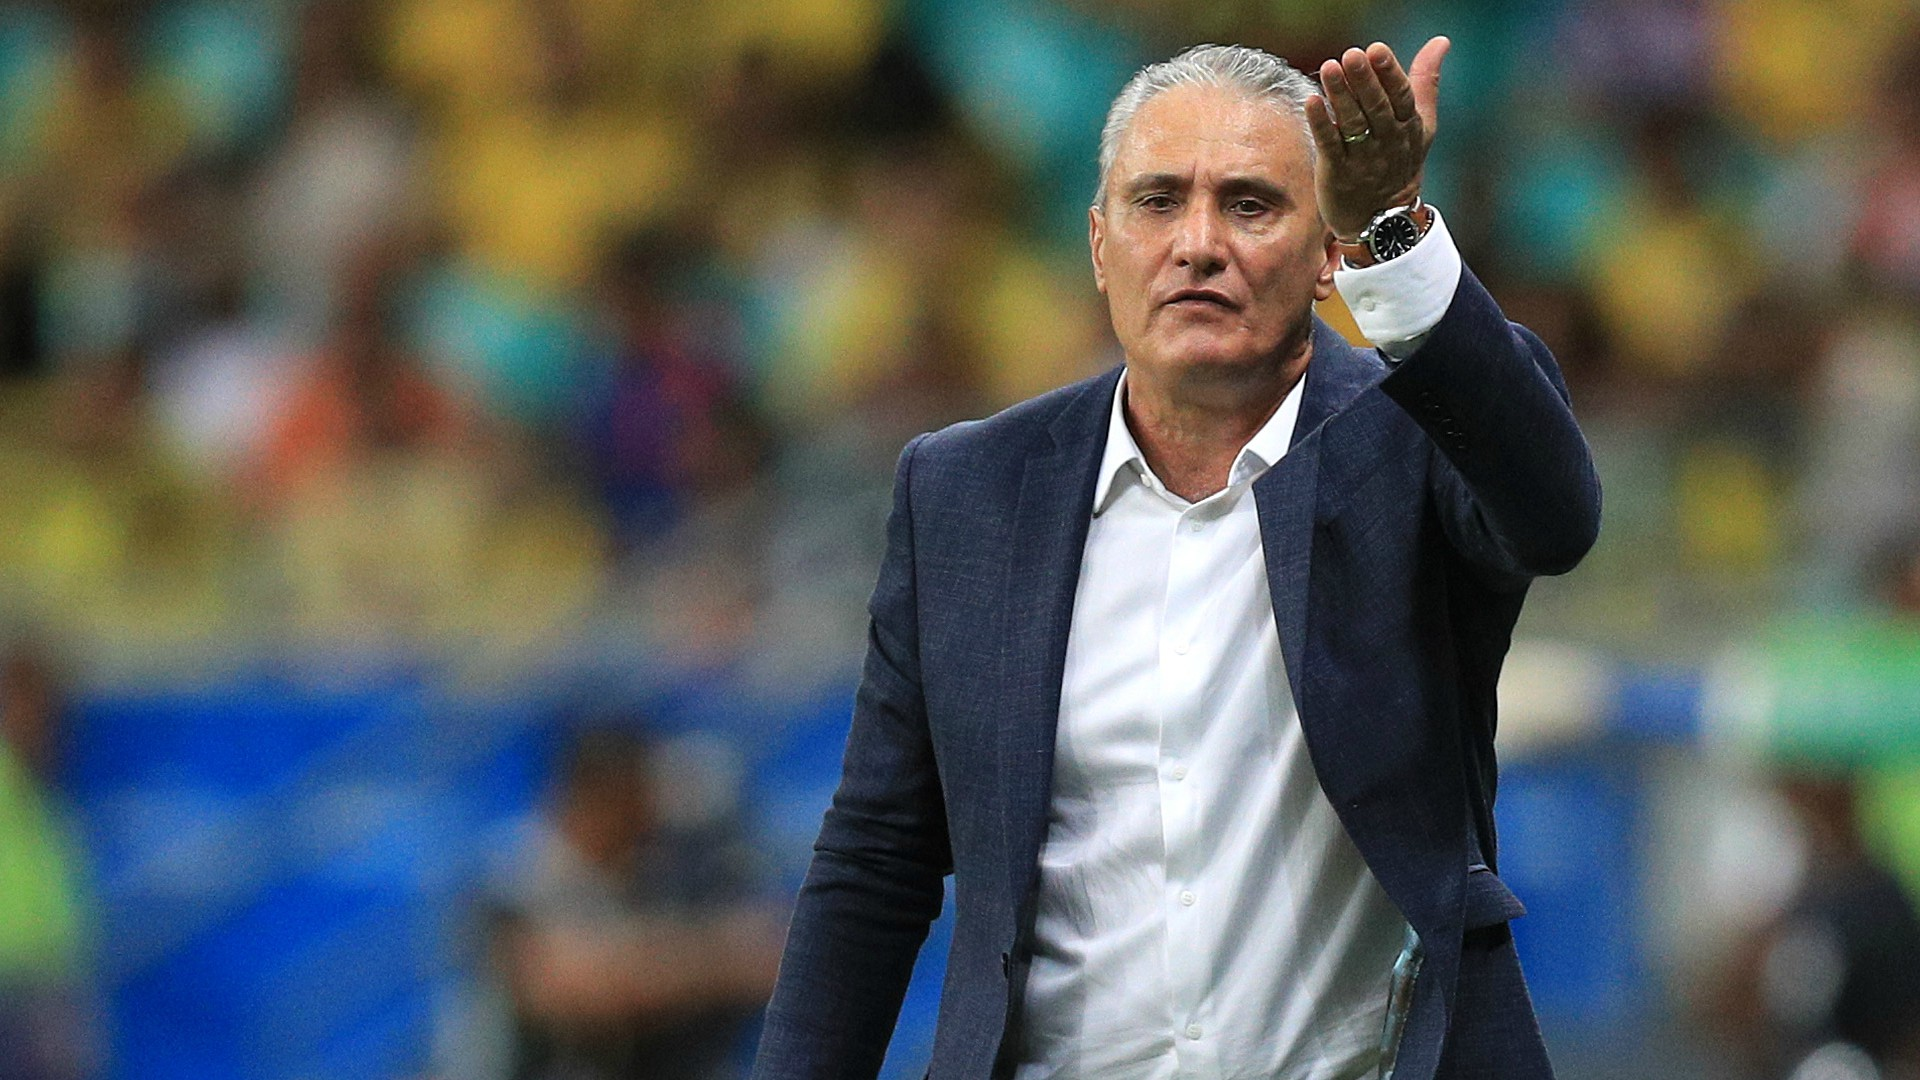 'They have a very clear opinion' - Brazil boss Tite says some players oppose Copa America on home soil